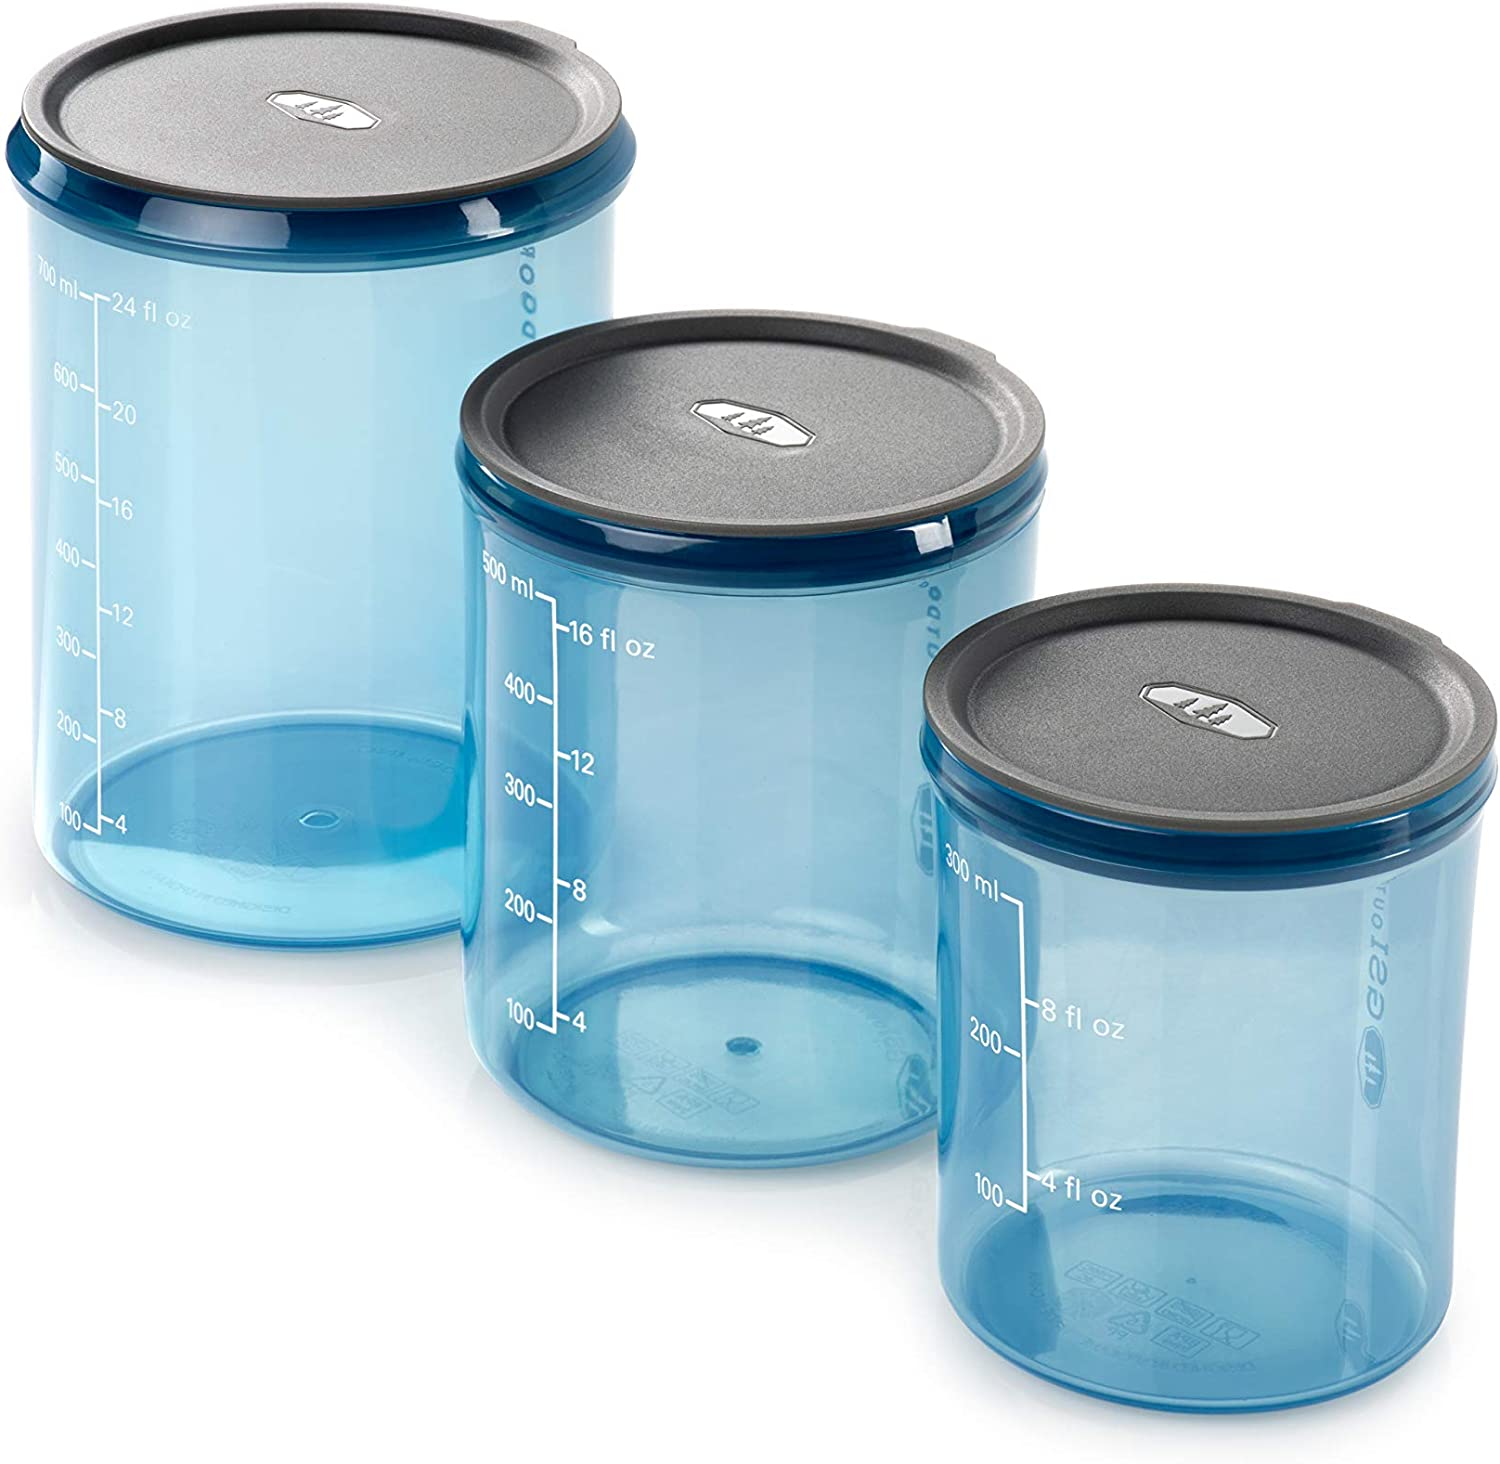 GSI Outdoors Infinity Storage Set - 3 Piece Food Storage for Camping and Backpacking